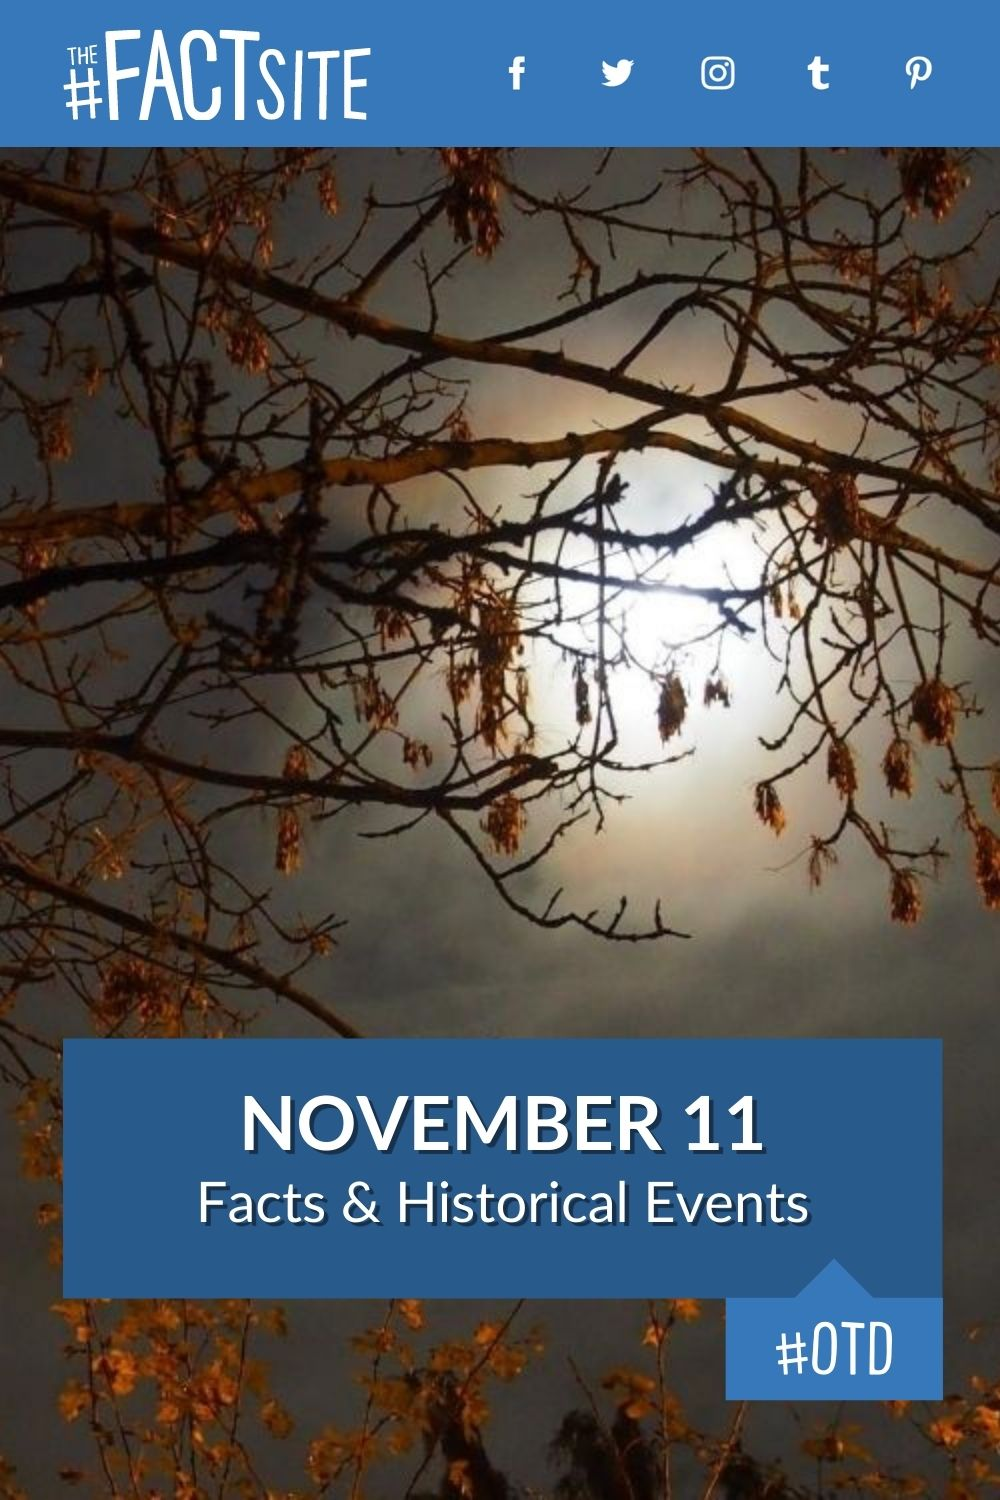 Facts & Historic Events That Happened on November 11